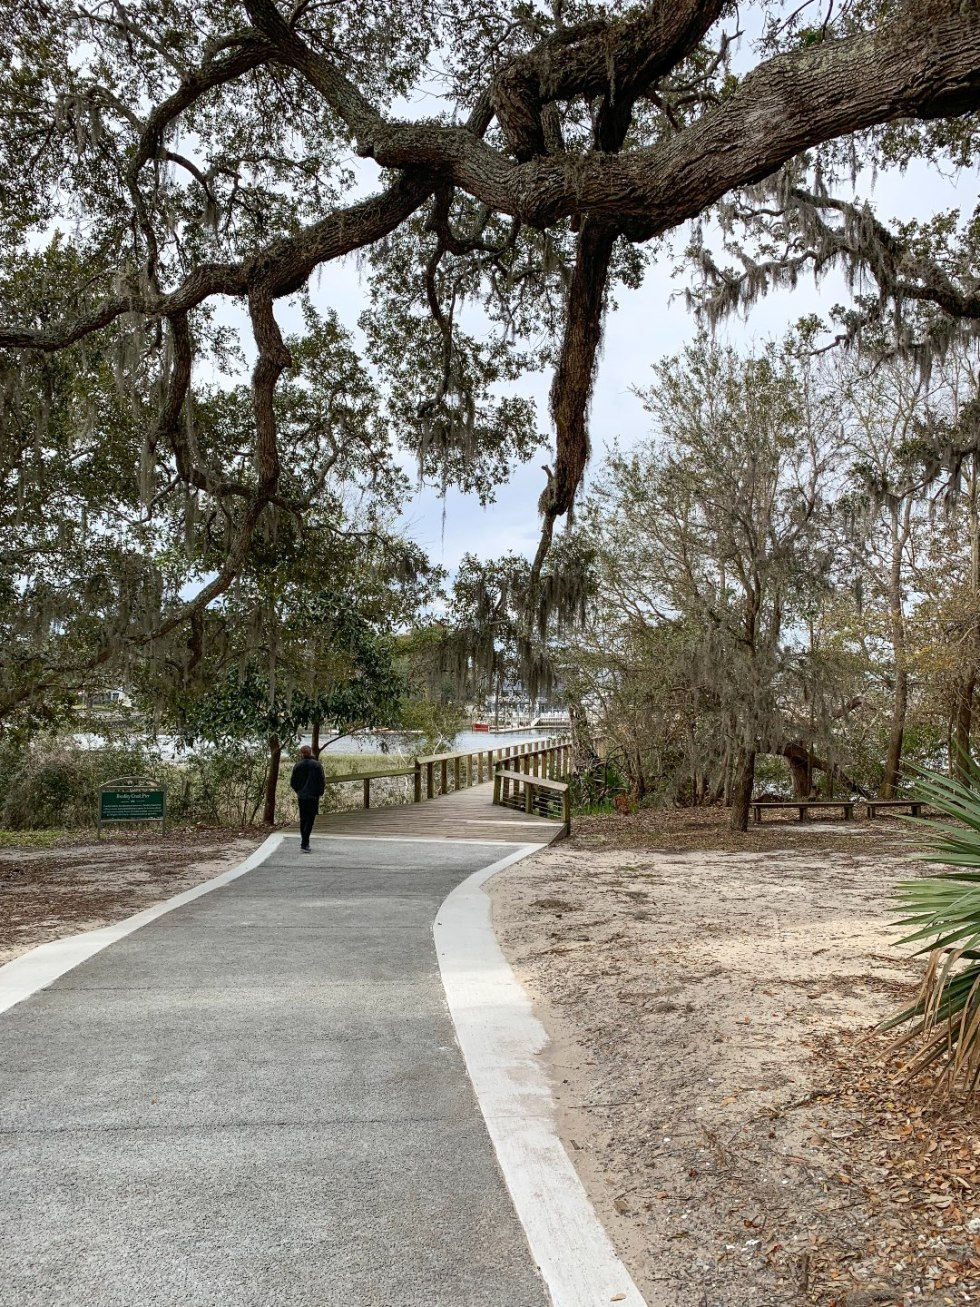 Best Places to Photography in North Carolina by popular N.C. lifestyle blog, I'm Fixin' To: image of a asphalt pathway under a tree covered in Spanish Moss at the Airlie Gardens.